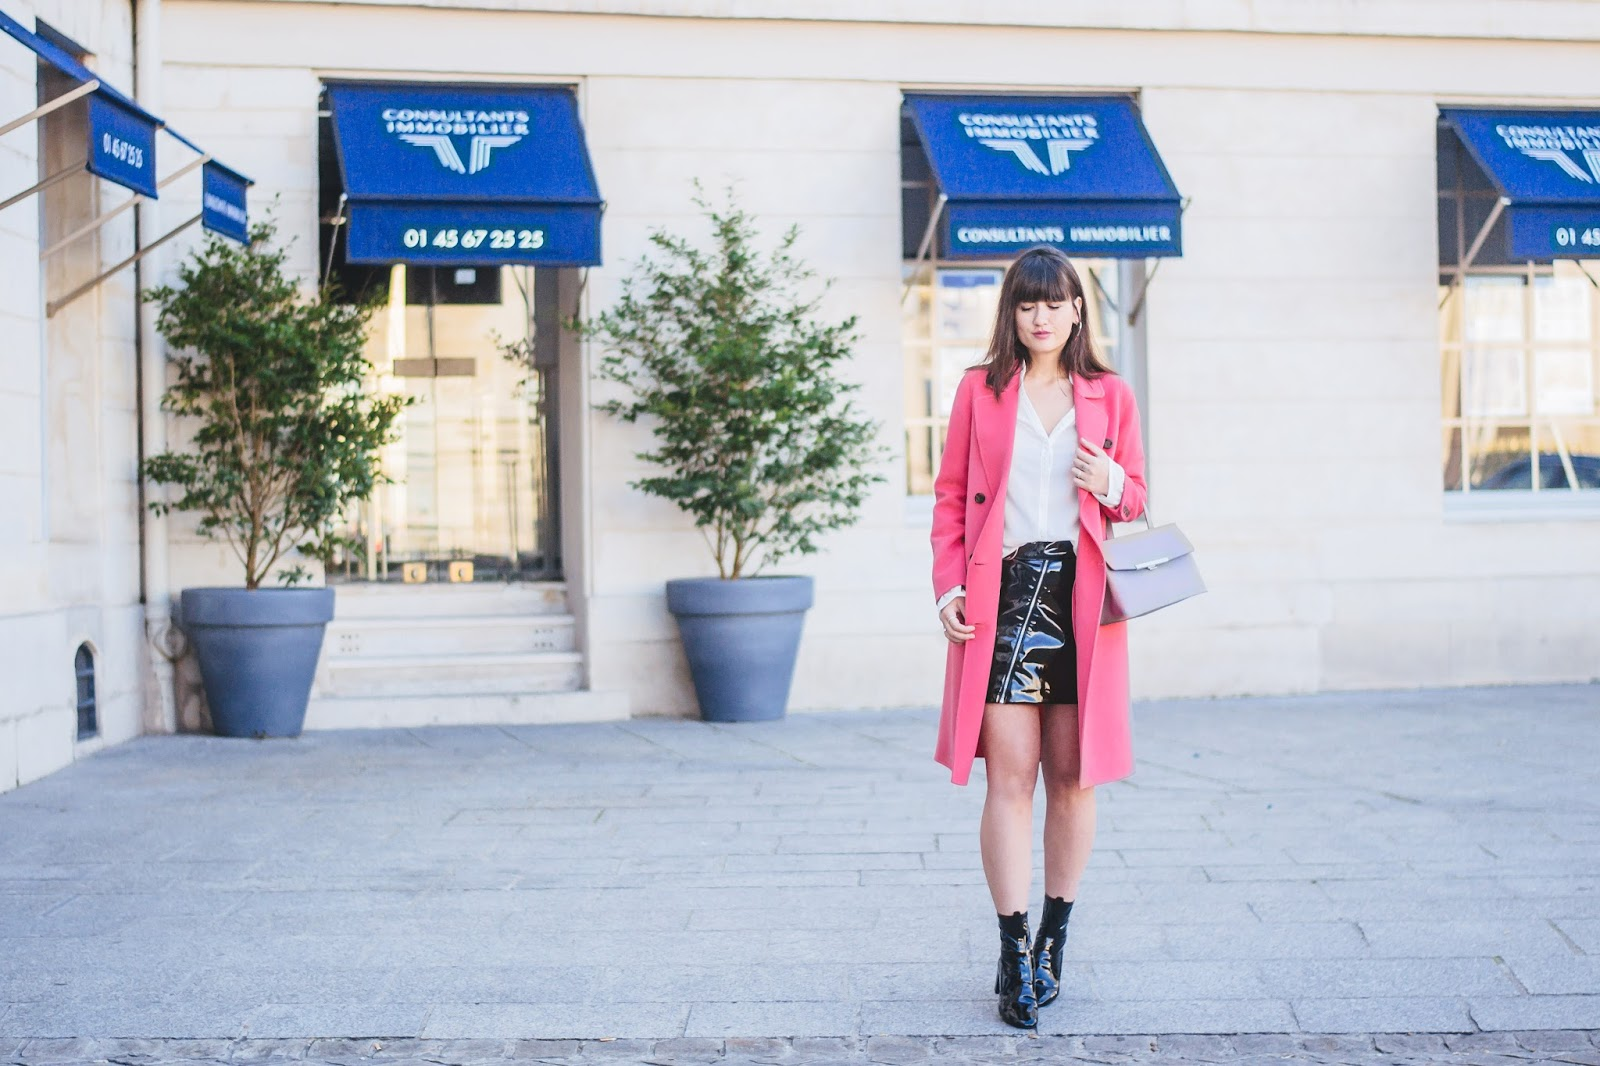 meetmeinparee-paris-style-look-mode-fashion-streetstyle-cool-parisianblogger